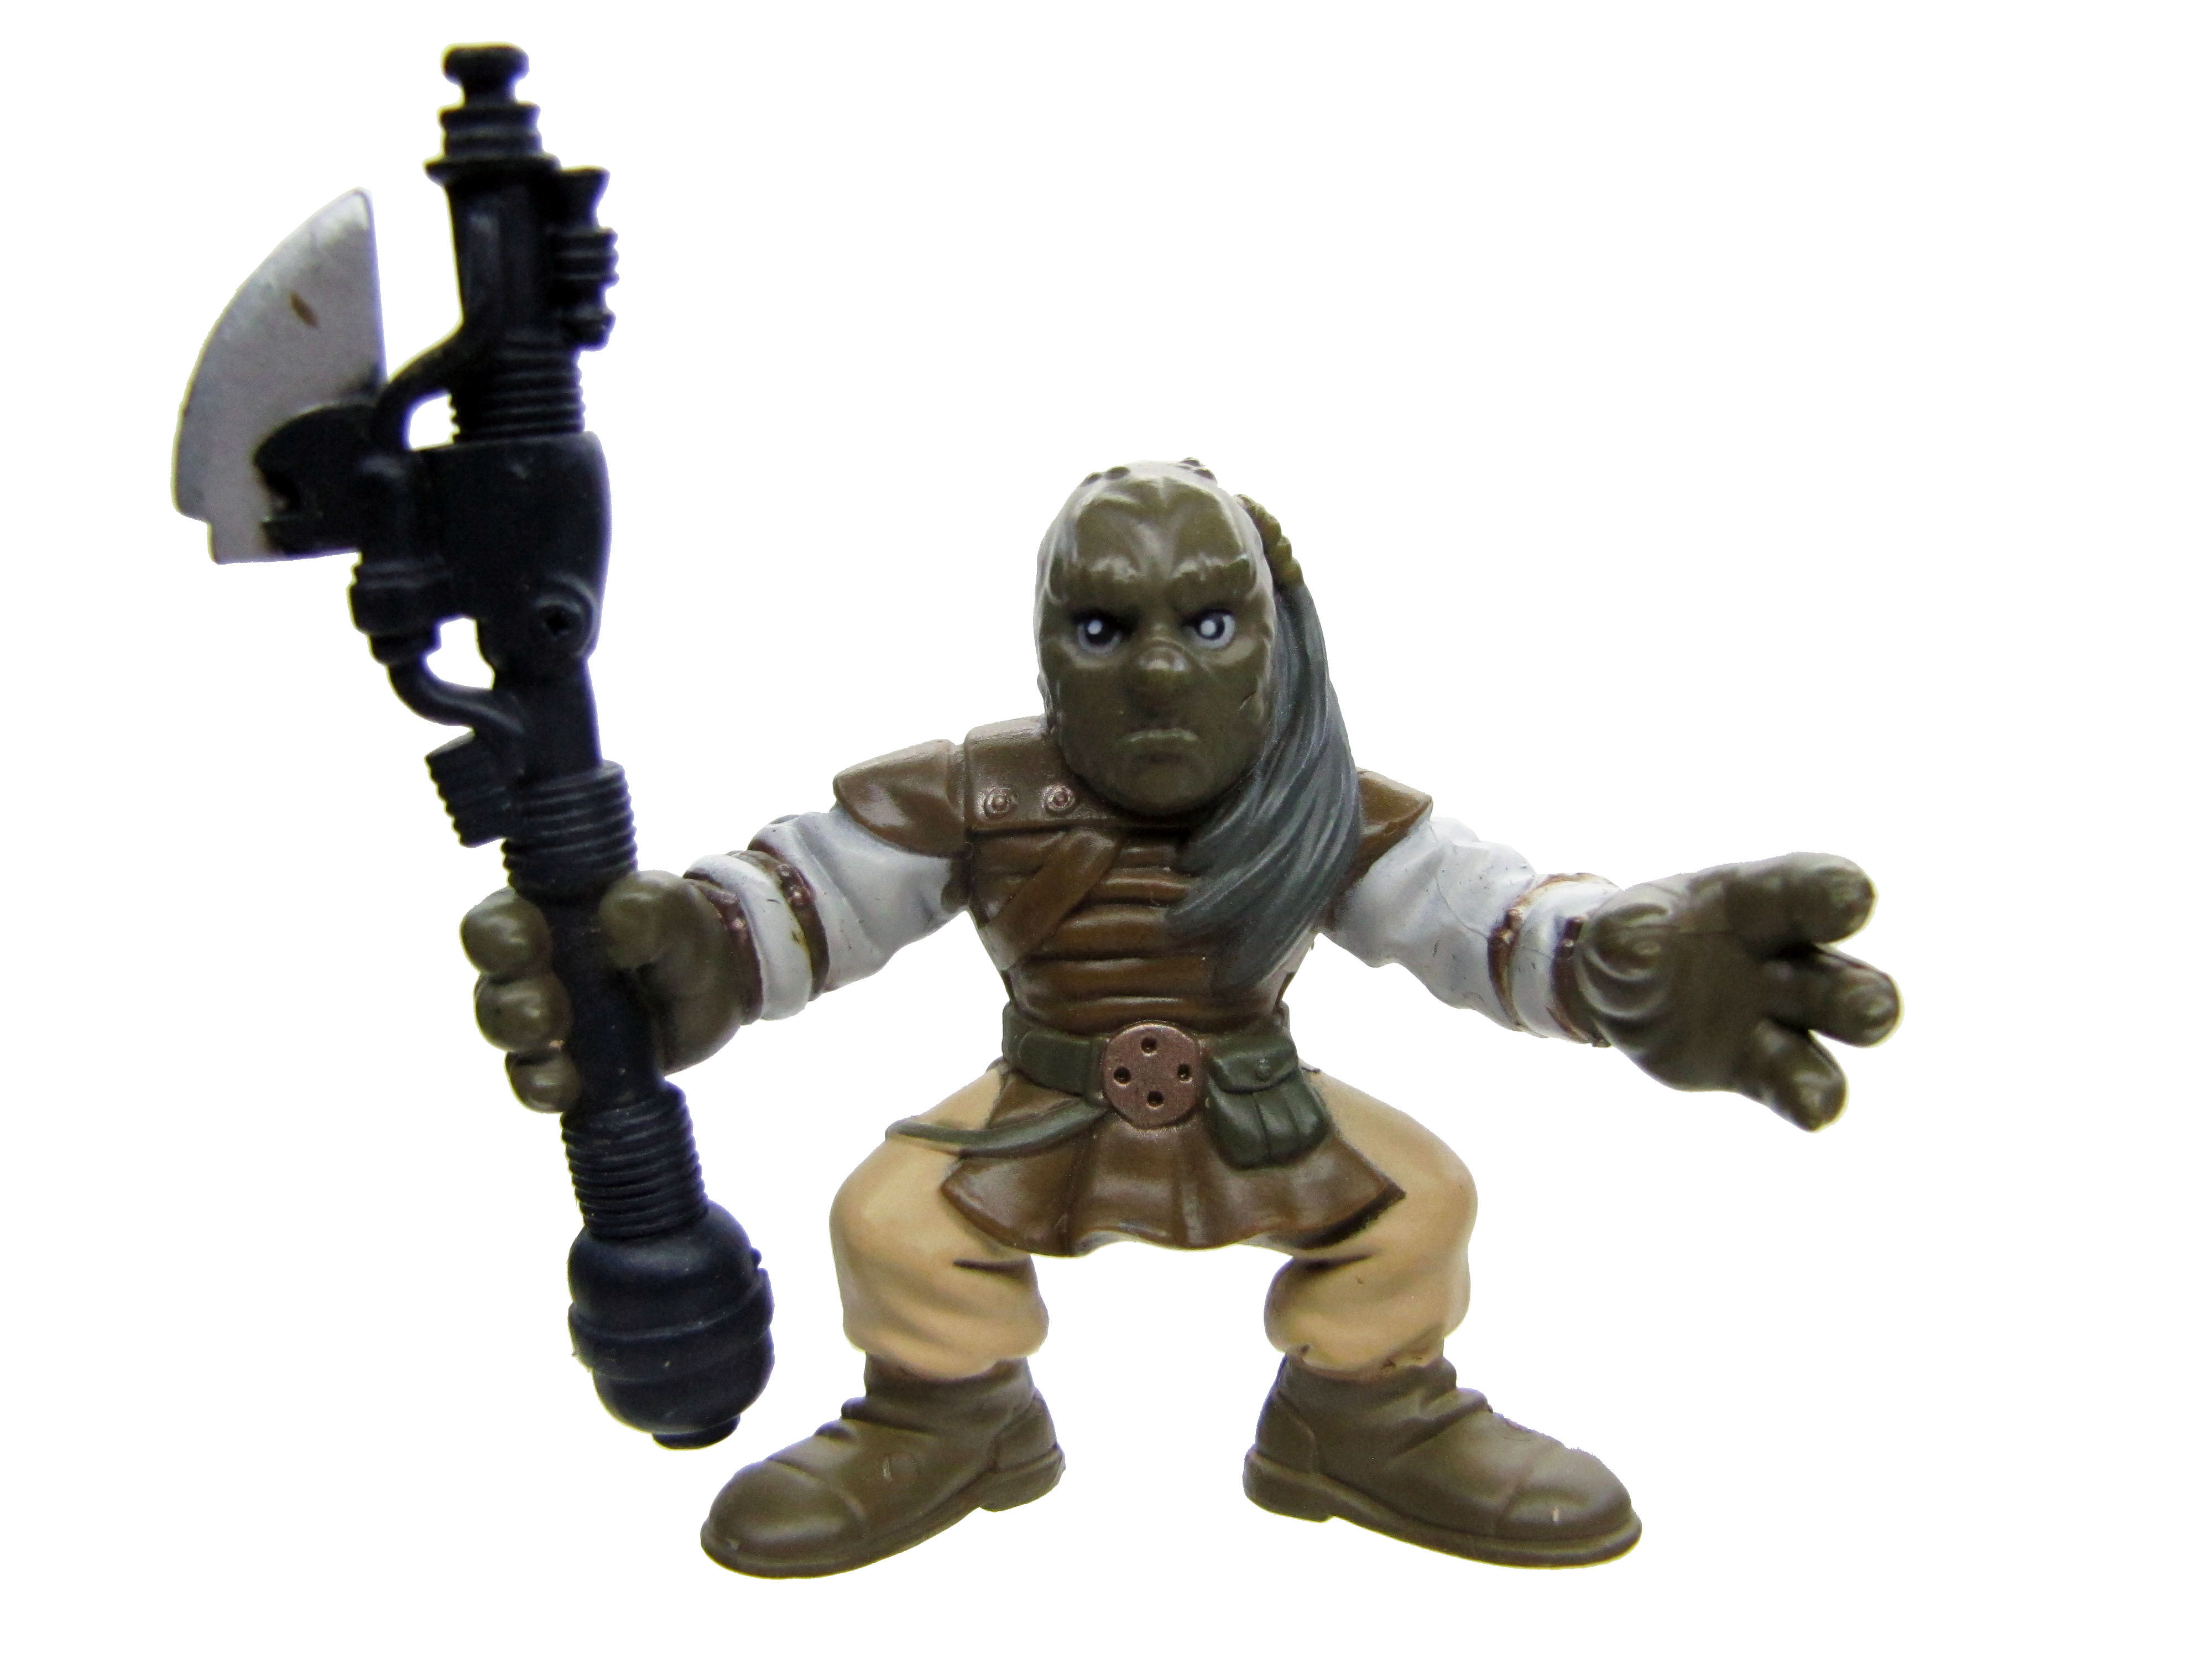 Star Wars Galactic Heroes JABBA'S SKIFF PIT OF CARKOON WEEQUAY